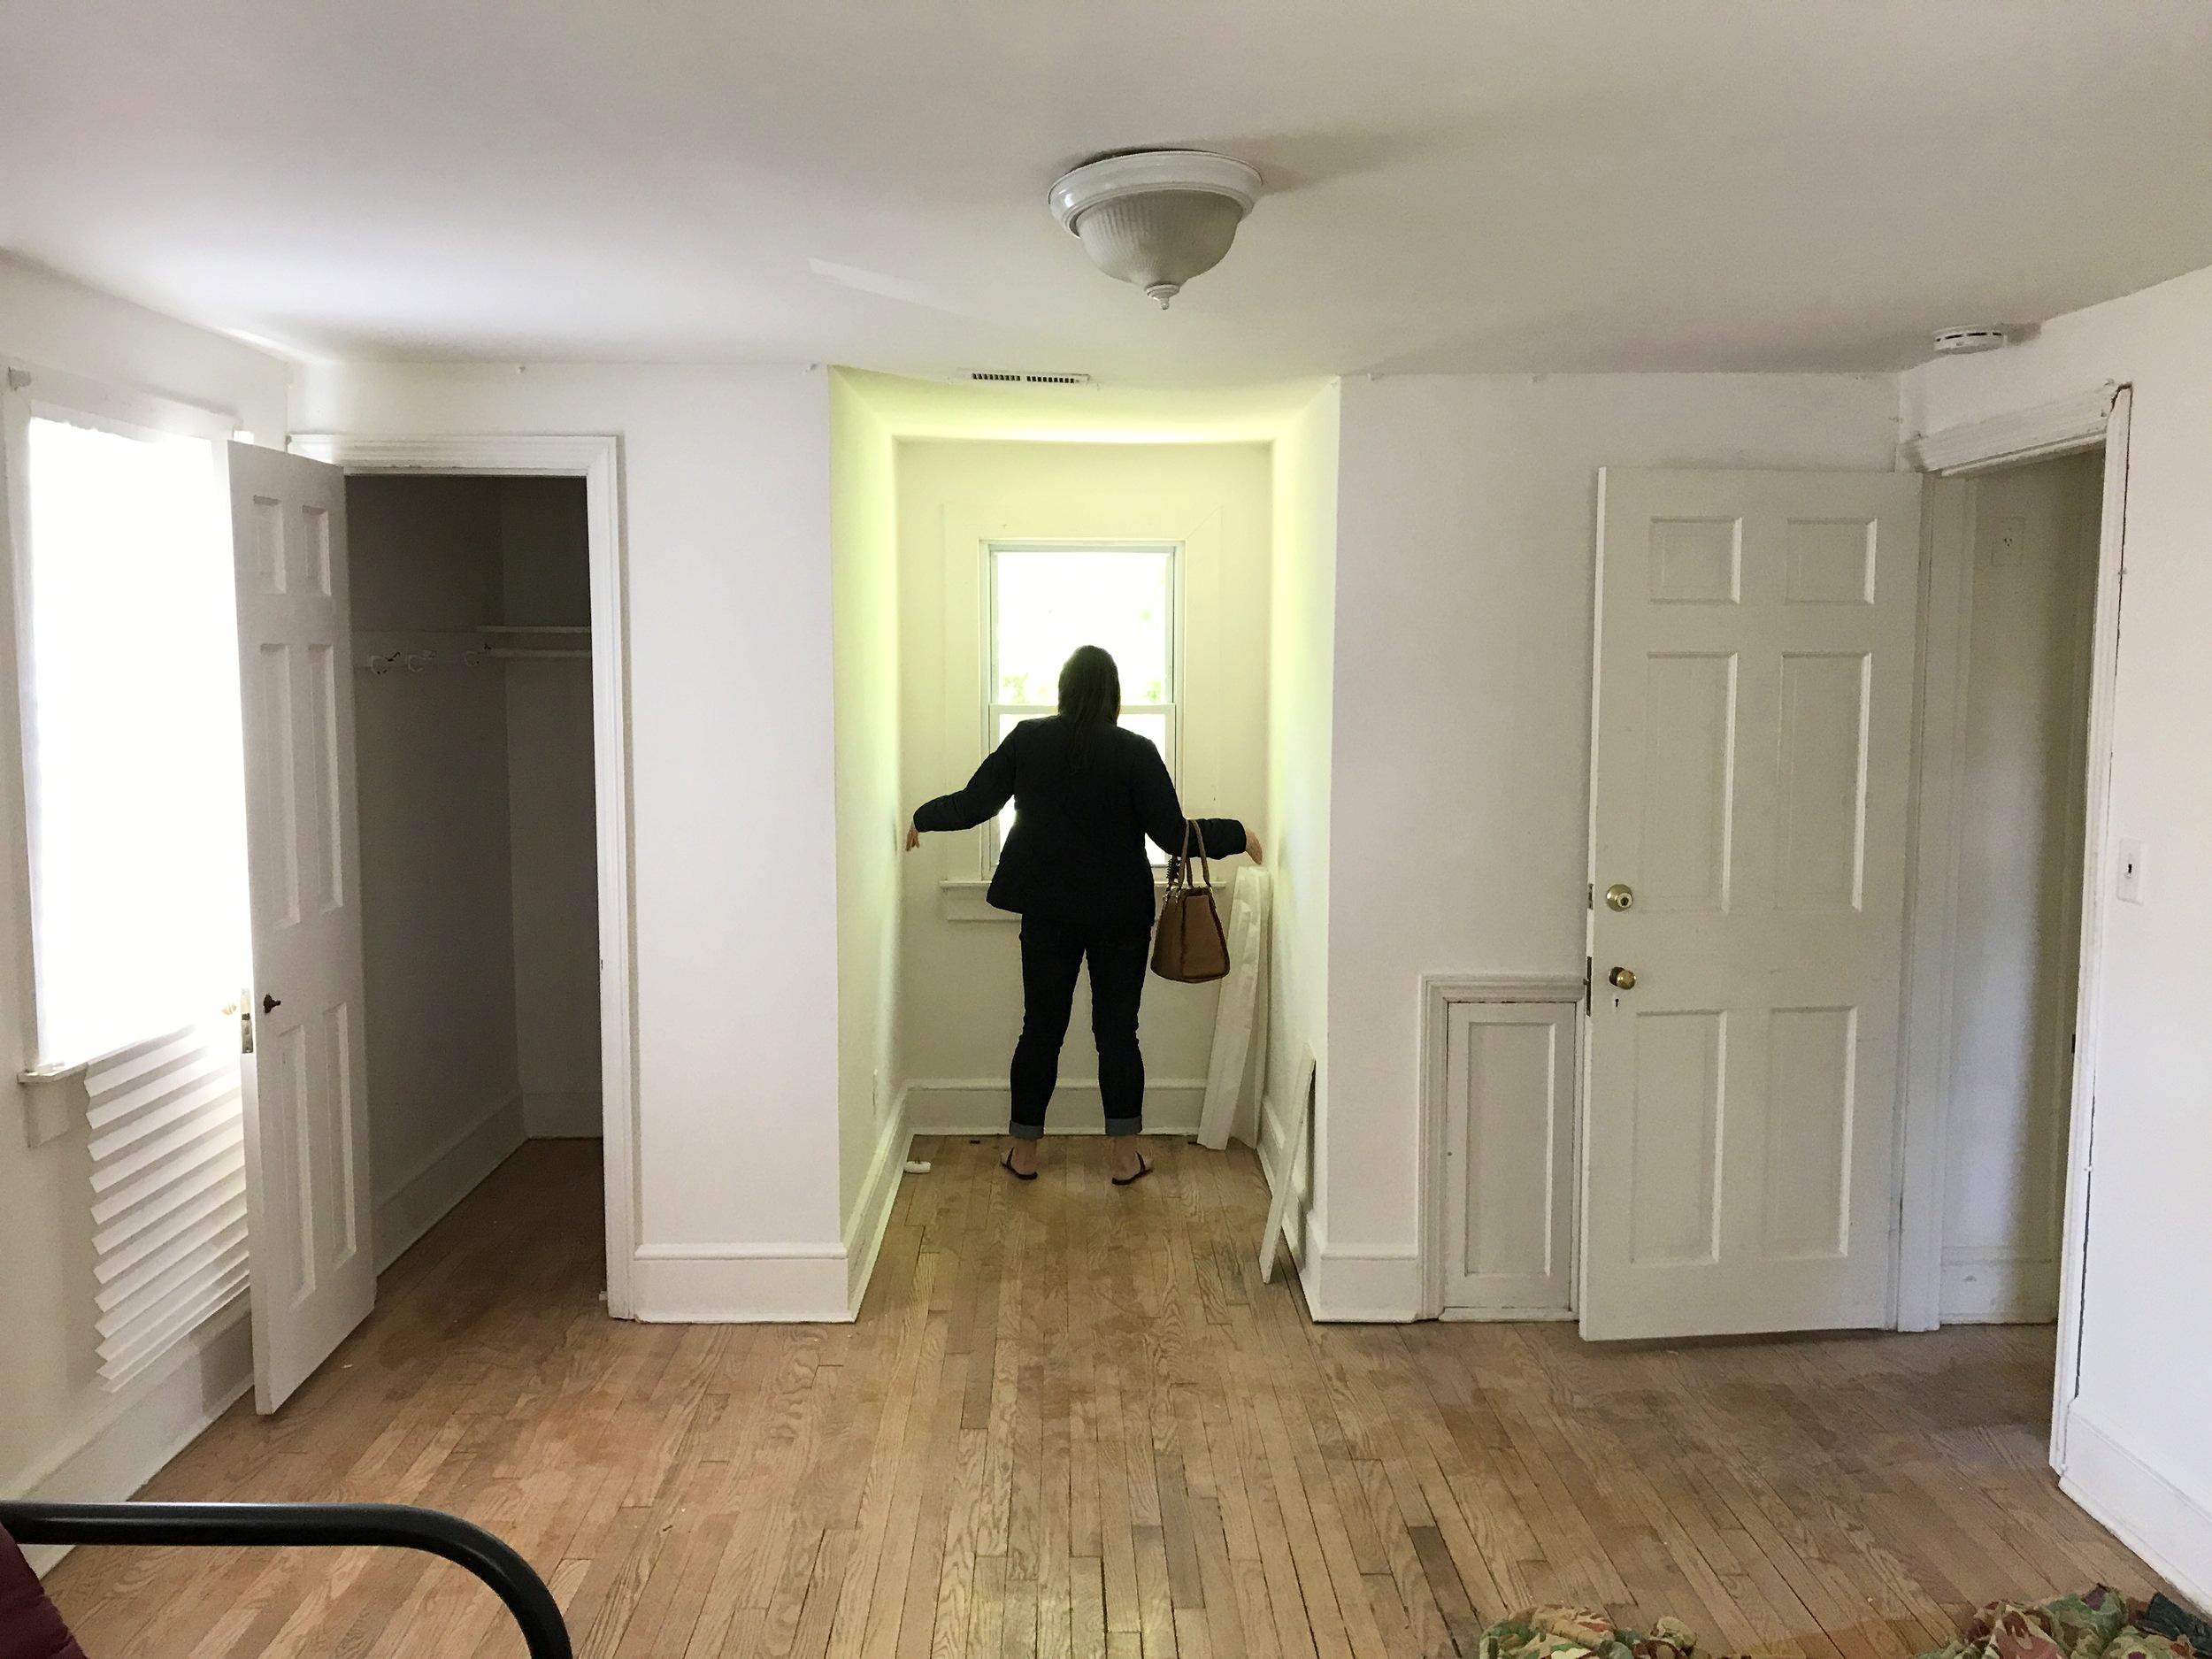 Before the renovation - Walk-in closet on the left, bedroom entrance off to the right